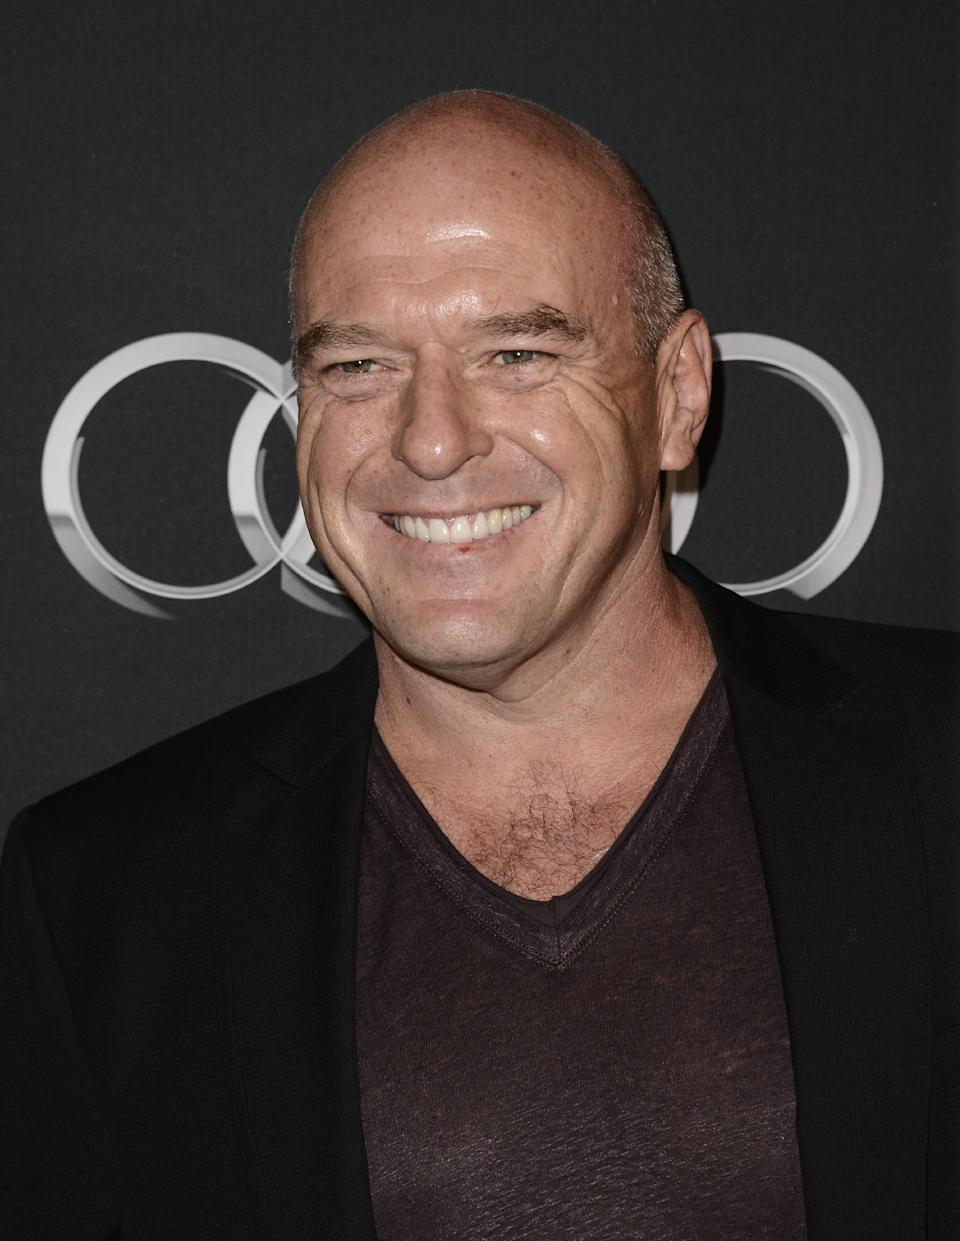 Actor Dean Norris arrives at the BAFTA's Los Angeles TV Tea party at the SLS Hotel on Saturday, Sept. 21, 2013 in Los Angeles. (Photo by Dan Steinberg/Invision/AP)